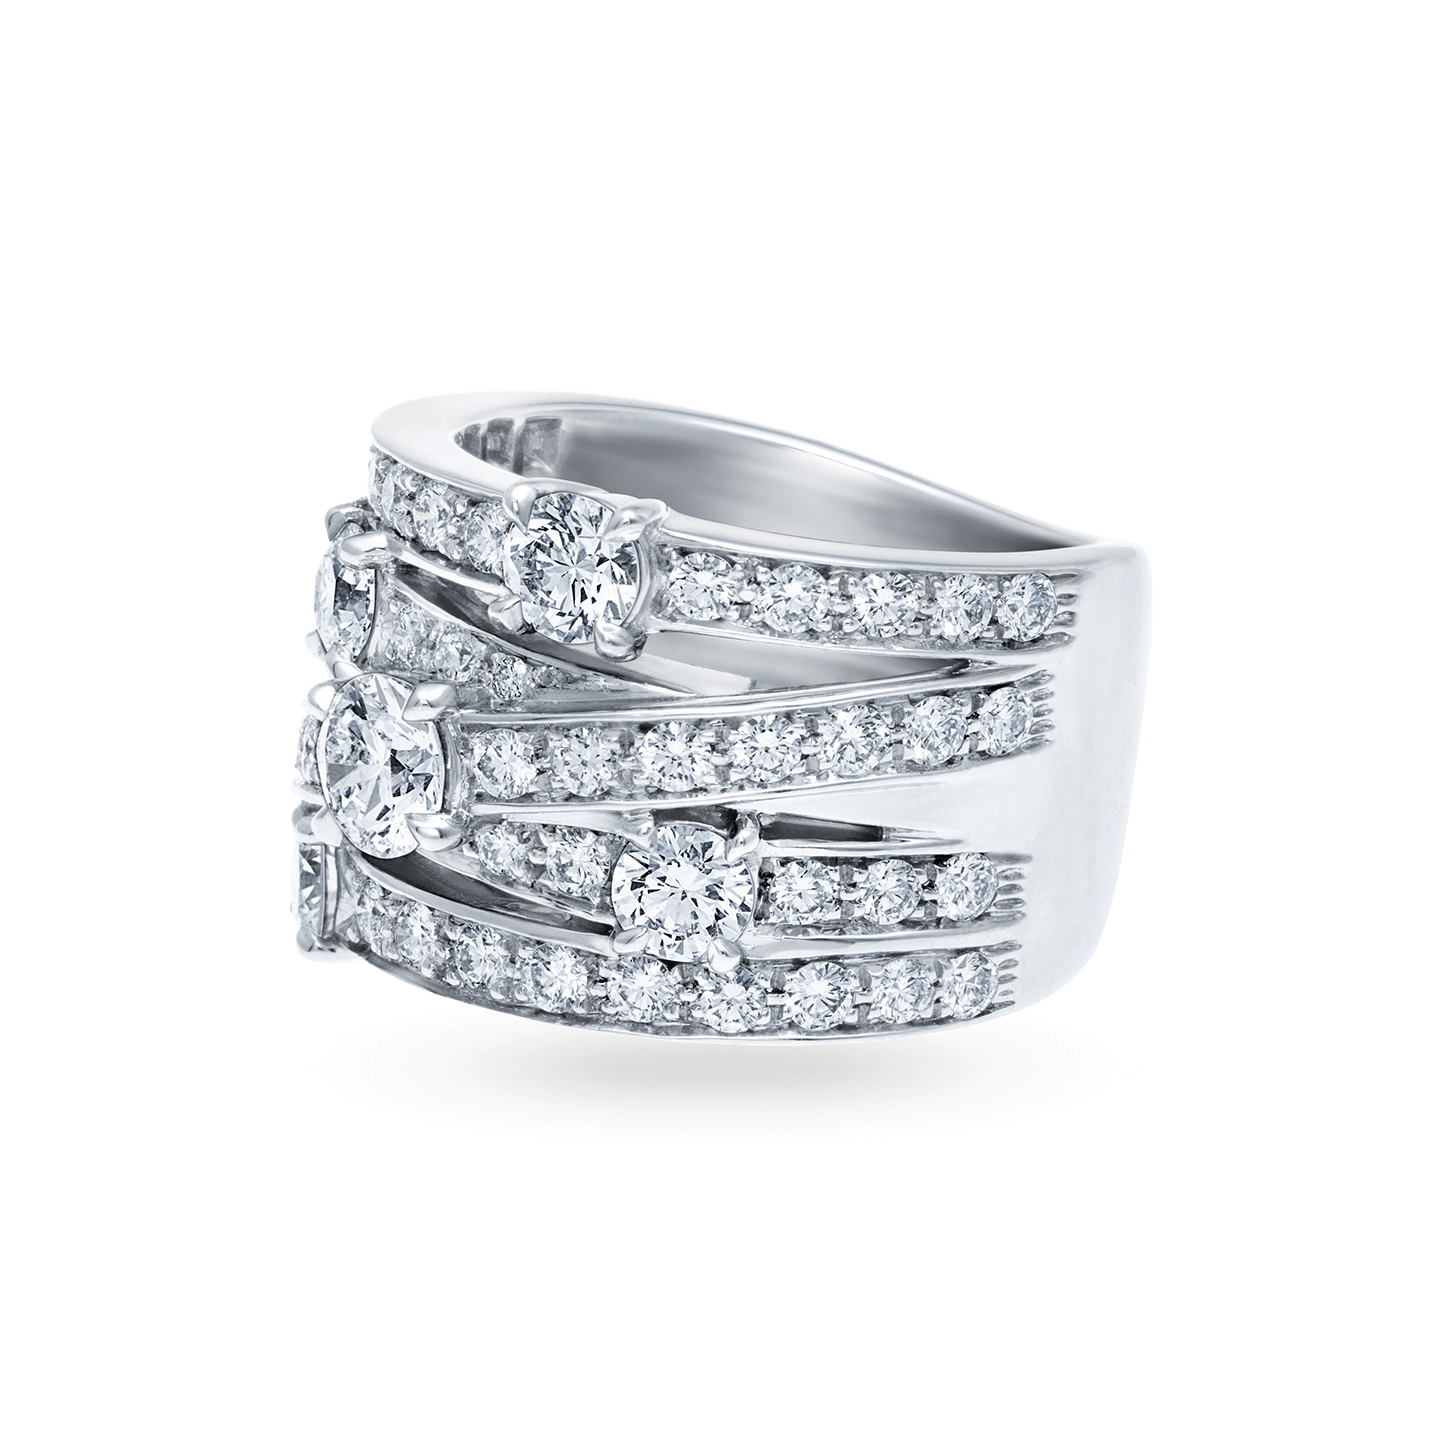 Crossover Diamond Ring, Product Image 2